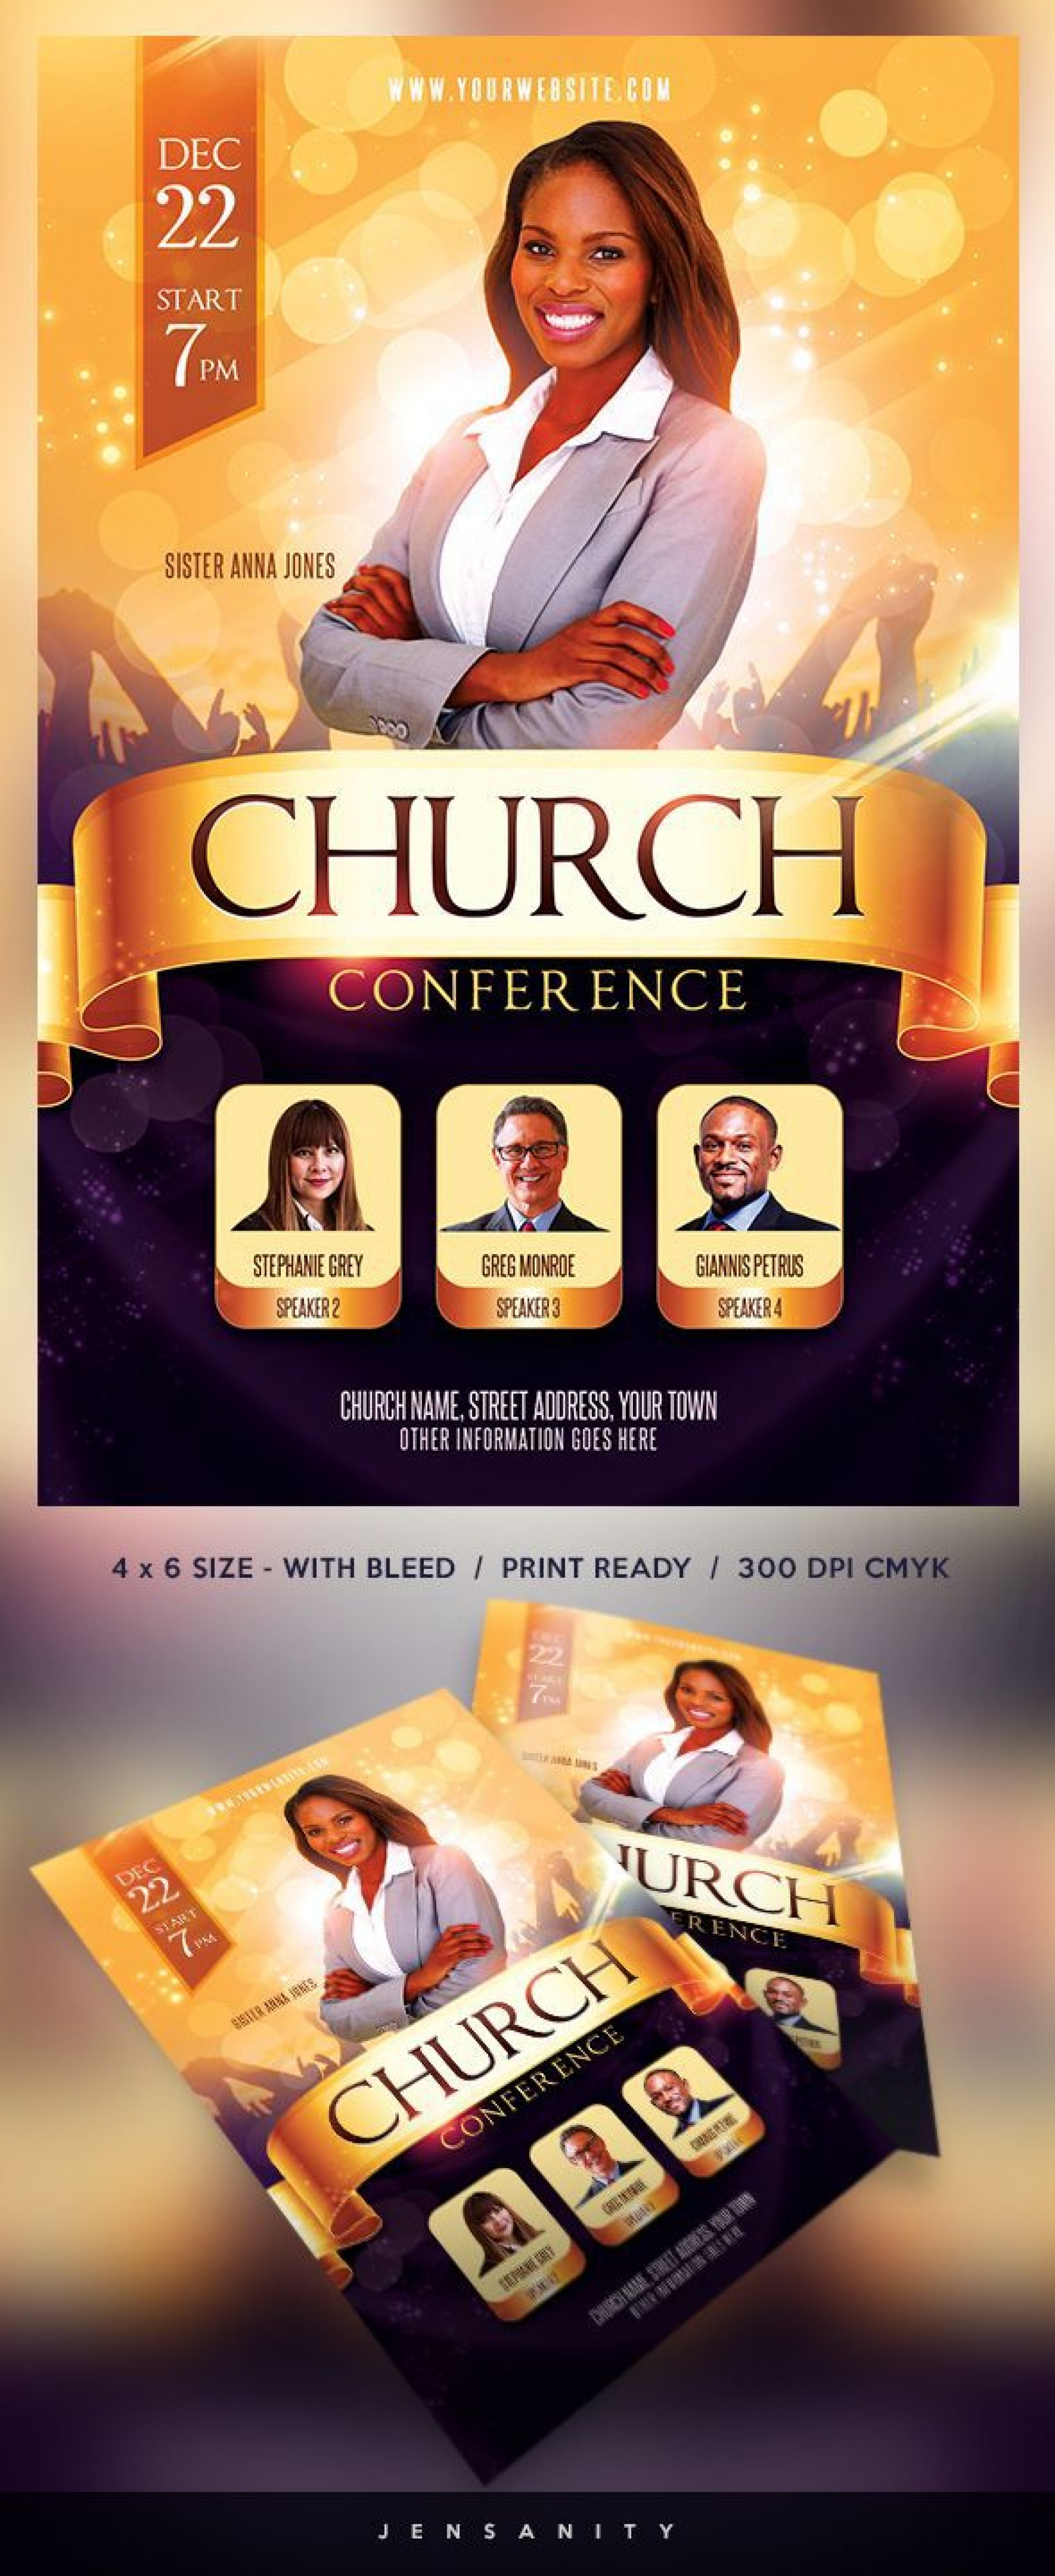 007 Awesome Church Flyer Template Free Download Idea  Event Psd1920